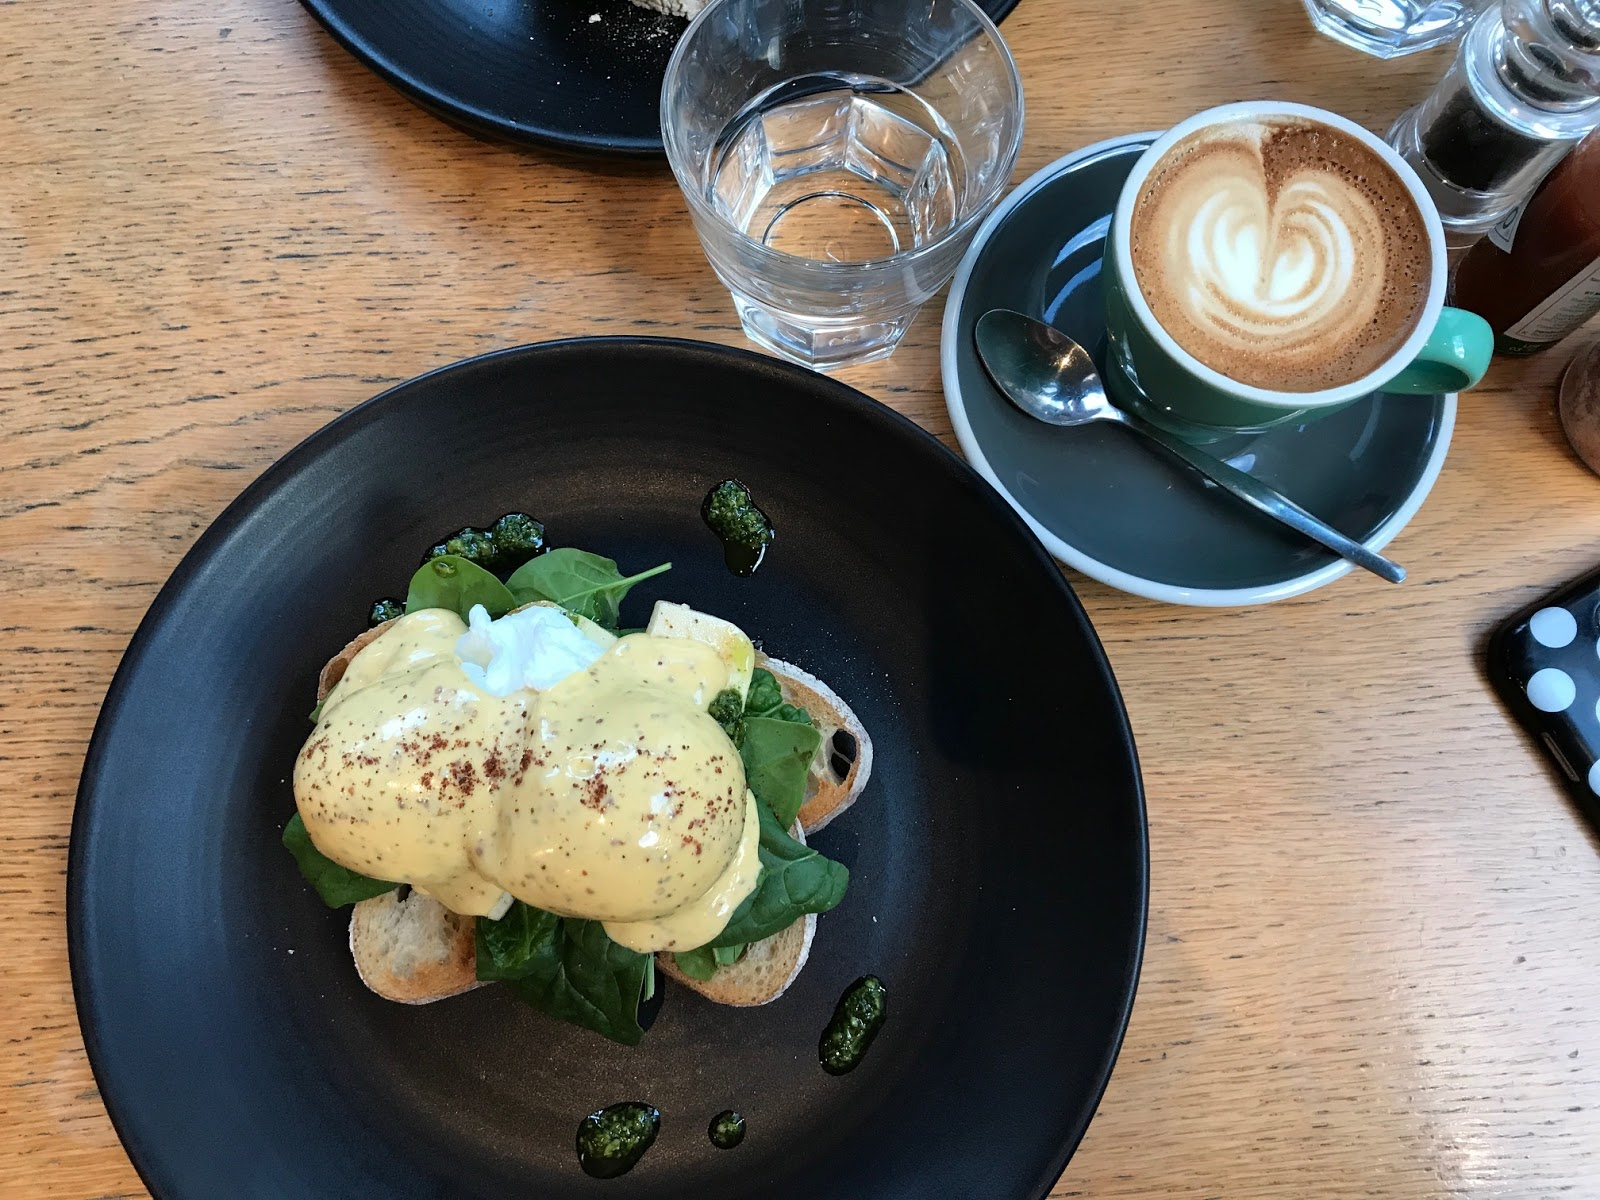 Best London brunches – according to a few experts!